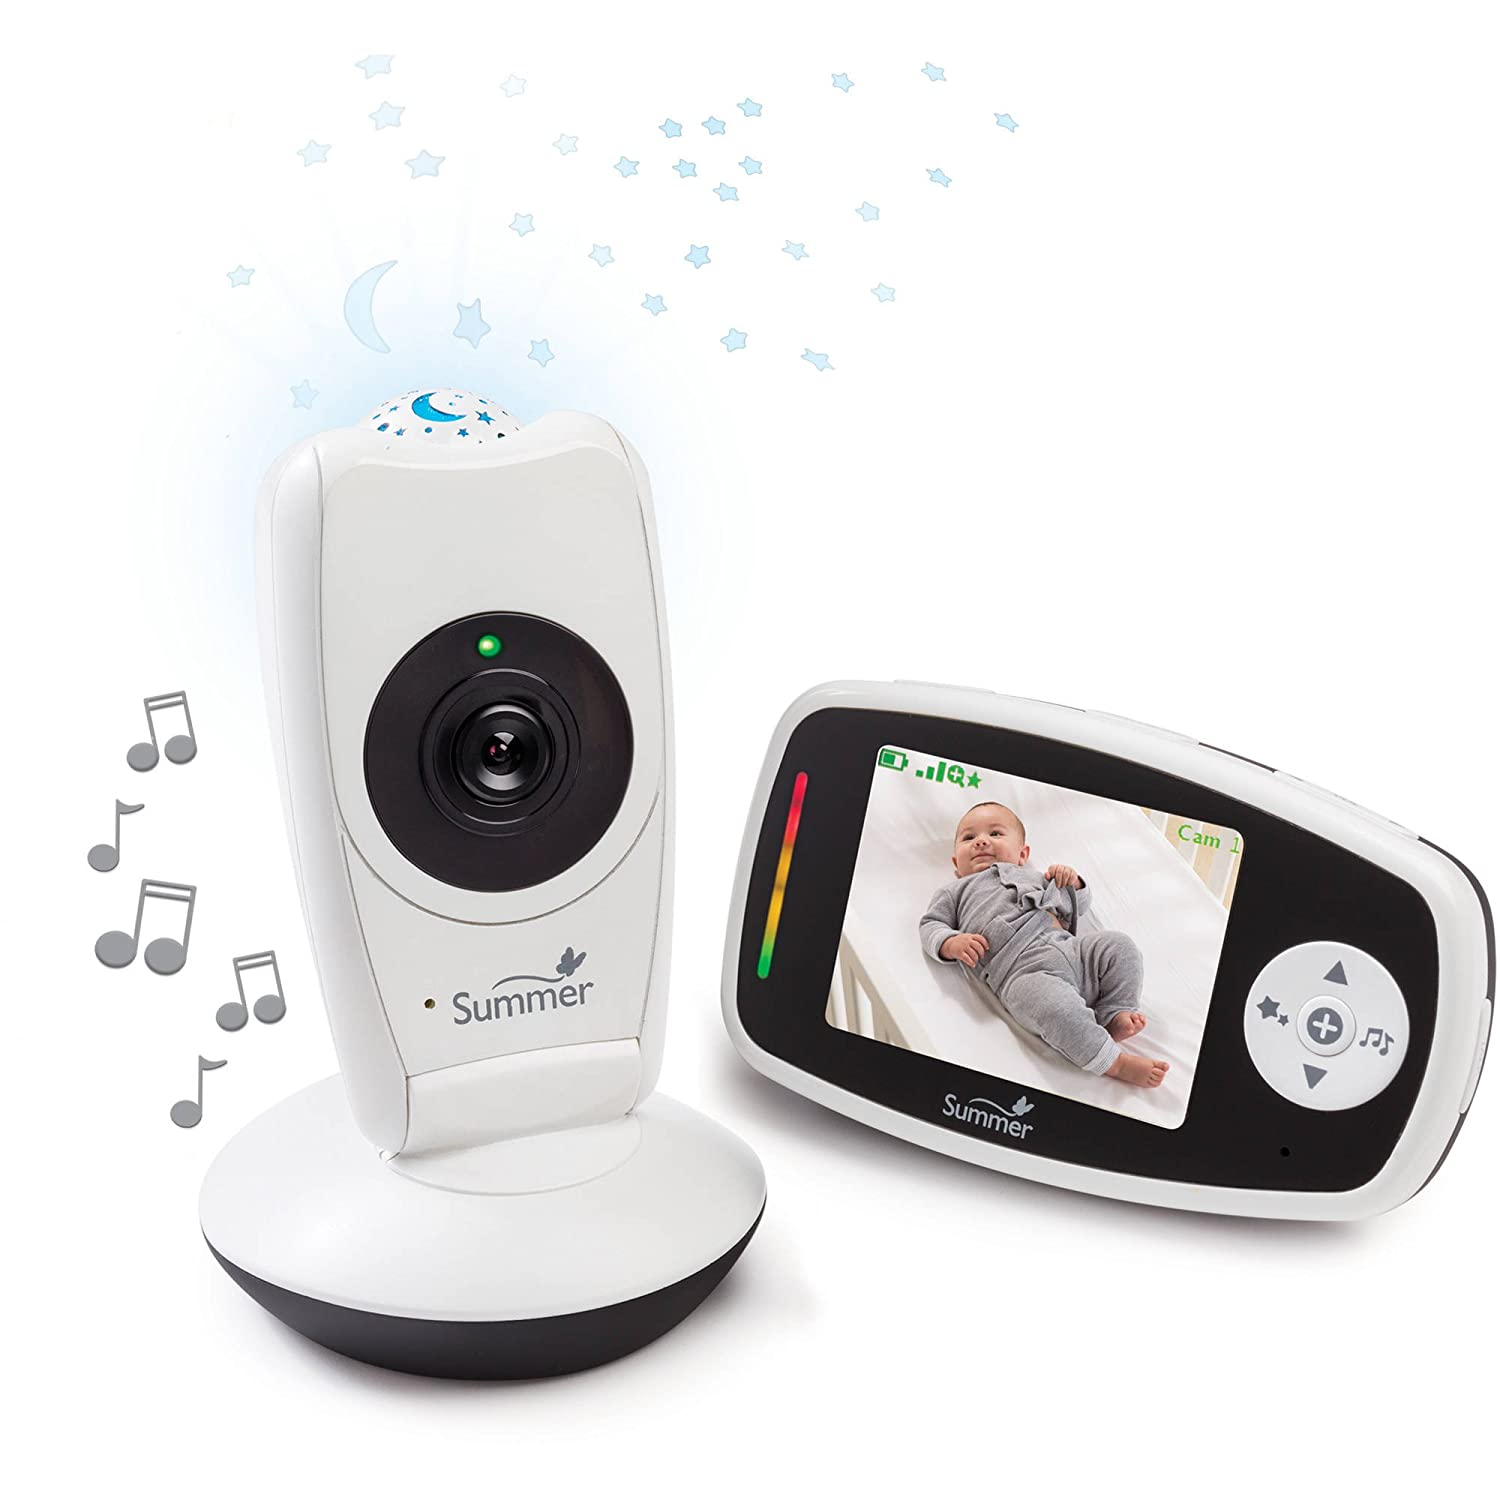 Summer Baby Glow Video Monitor Projection Camera